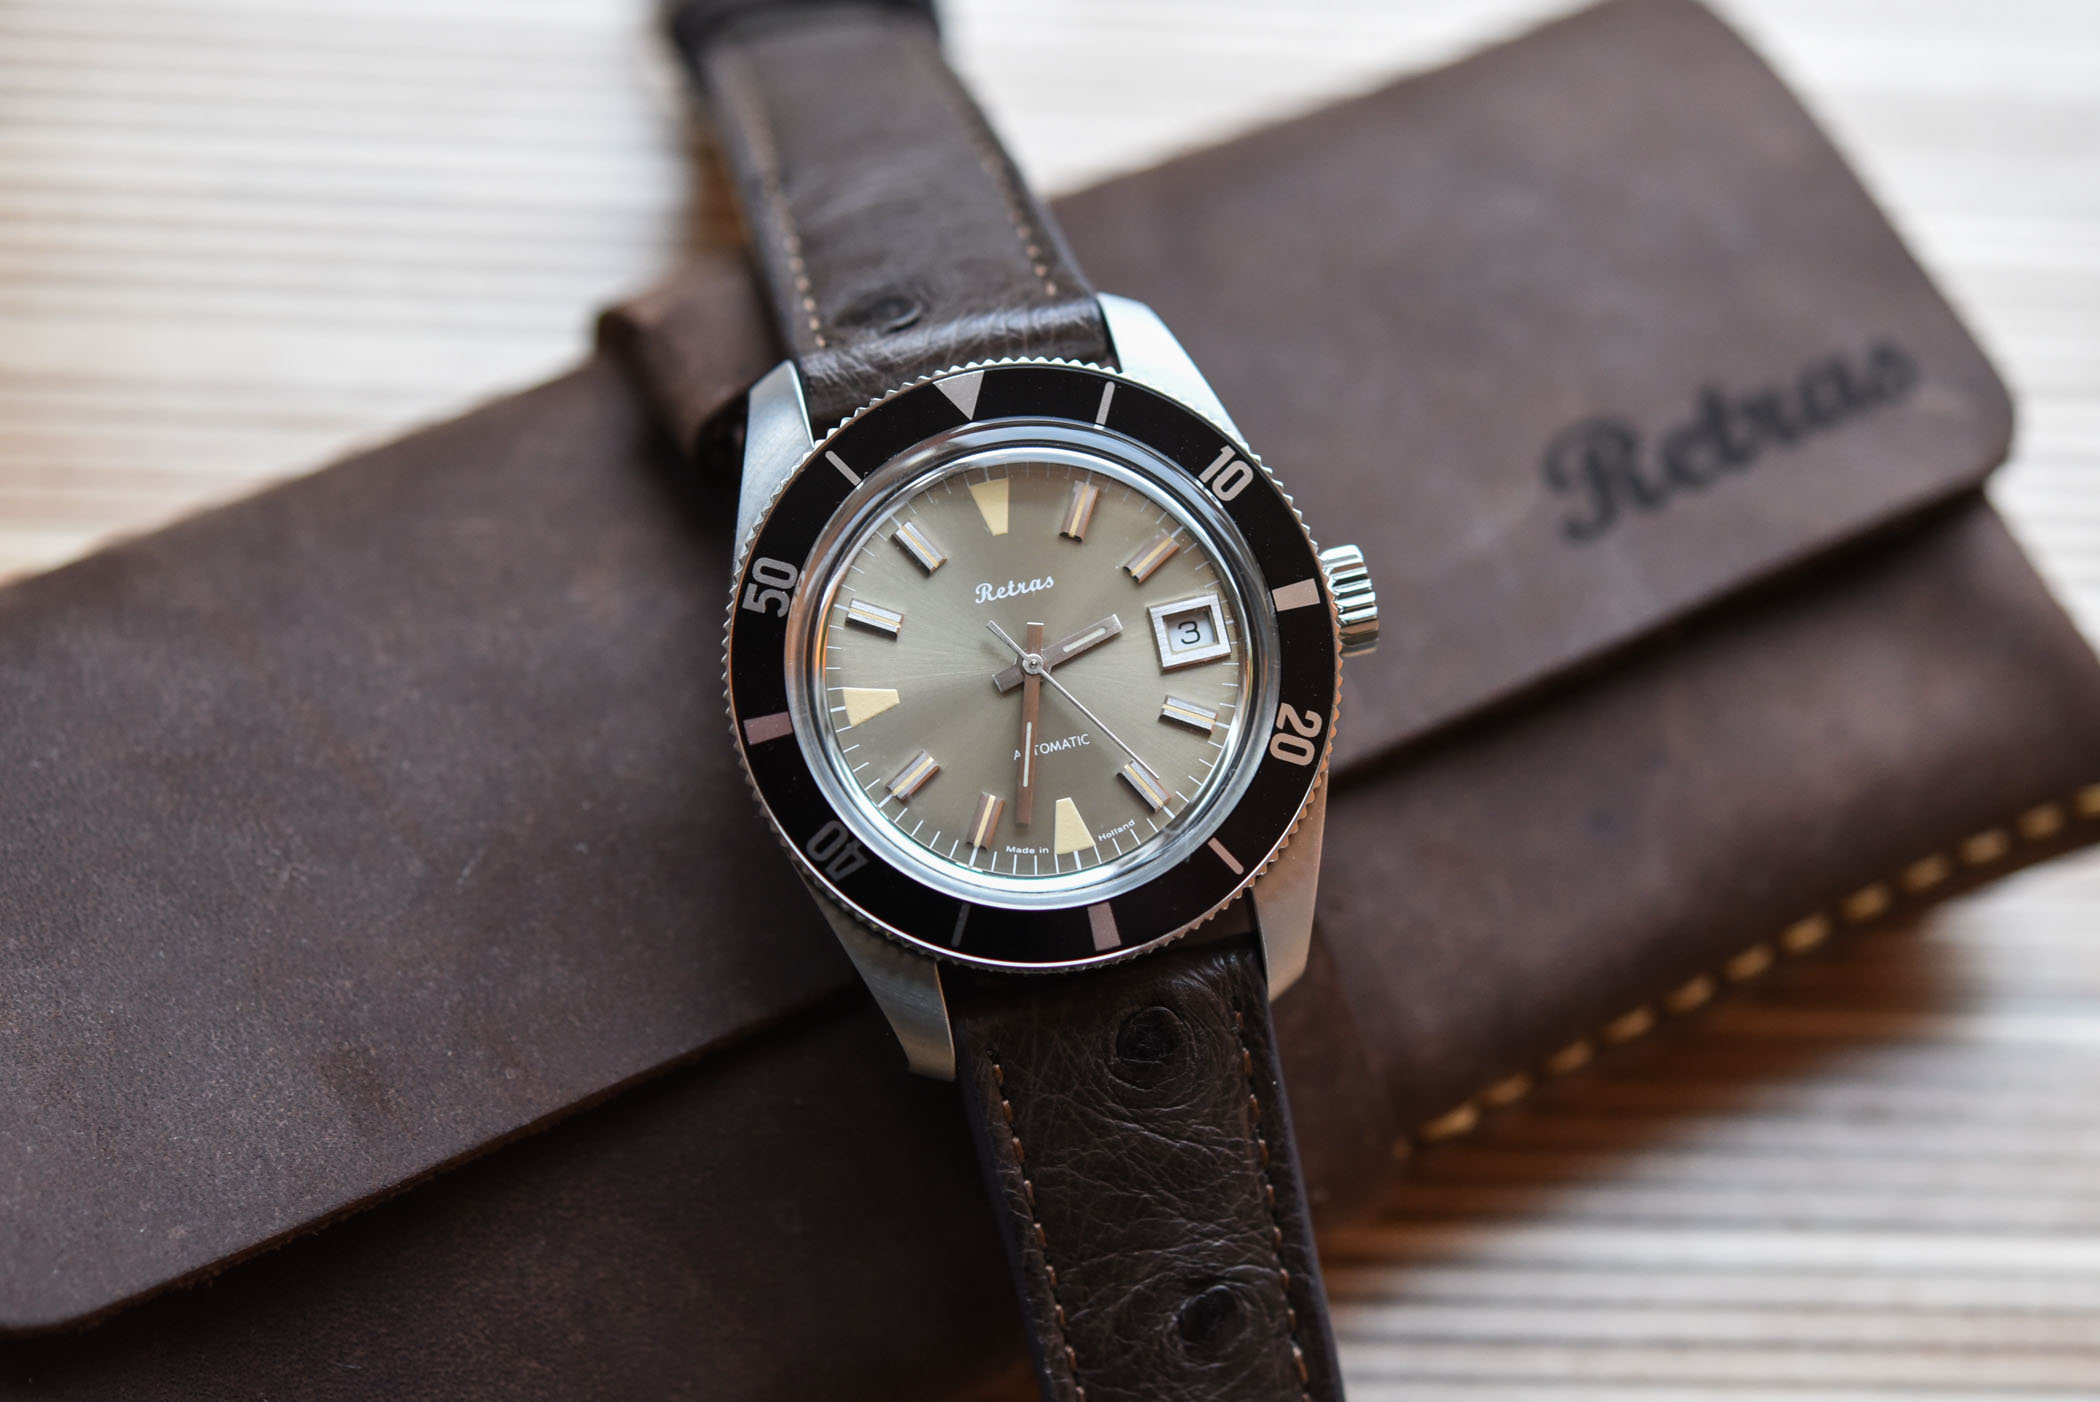 Retras Diver - Vintage Inspired Dive Watch